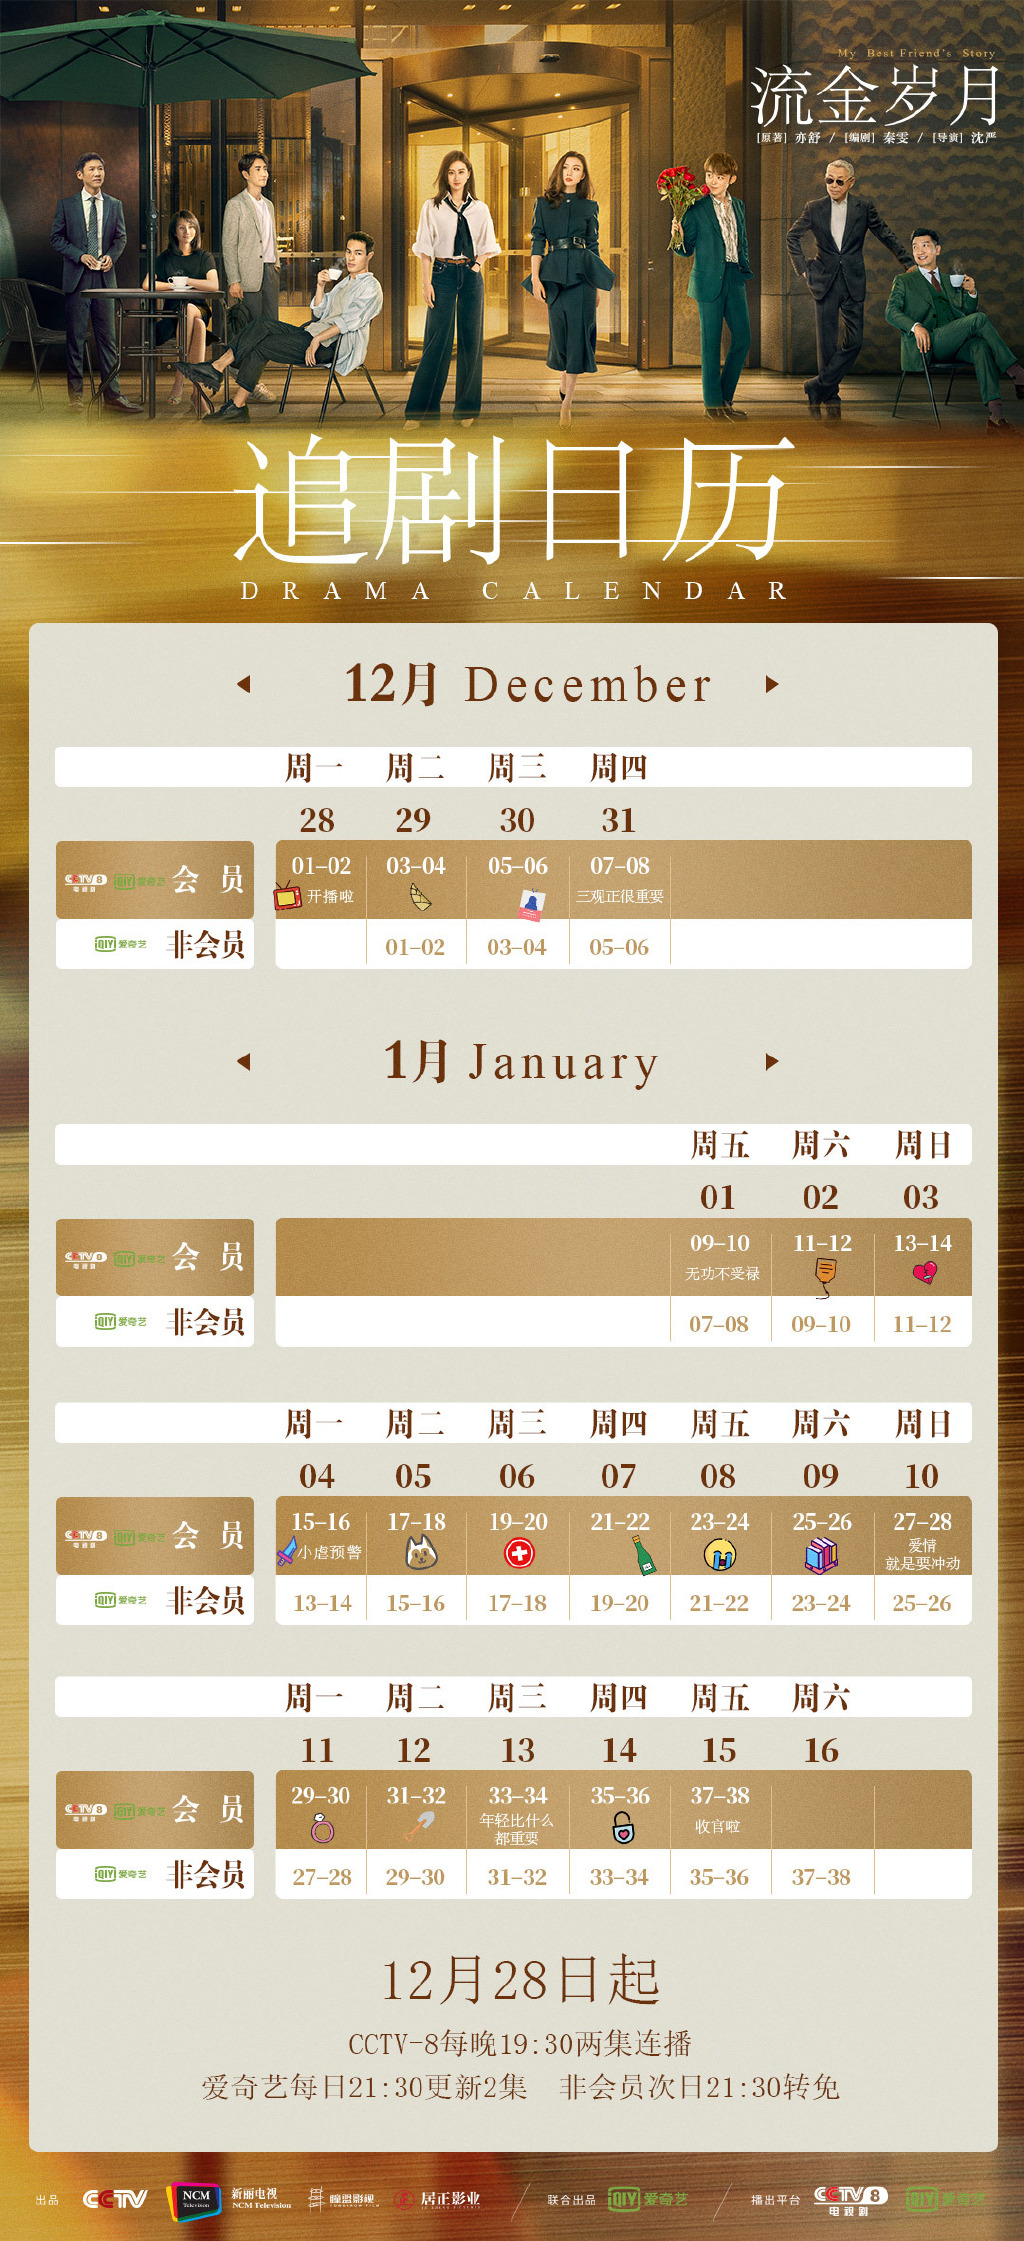 My Best Friend's Story Chinese Drama Airing Calendar